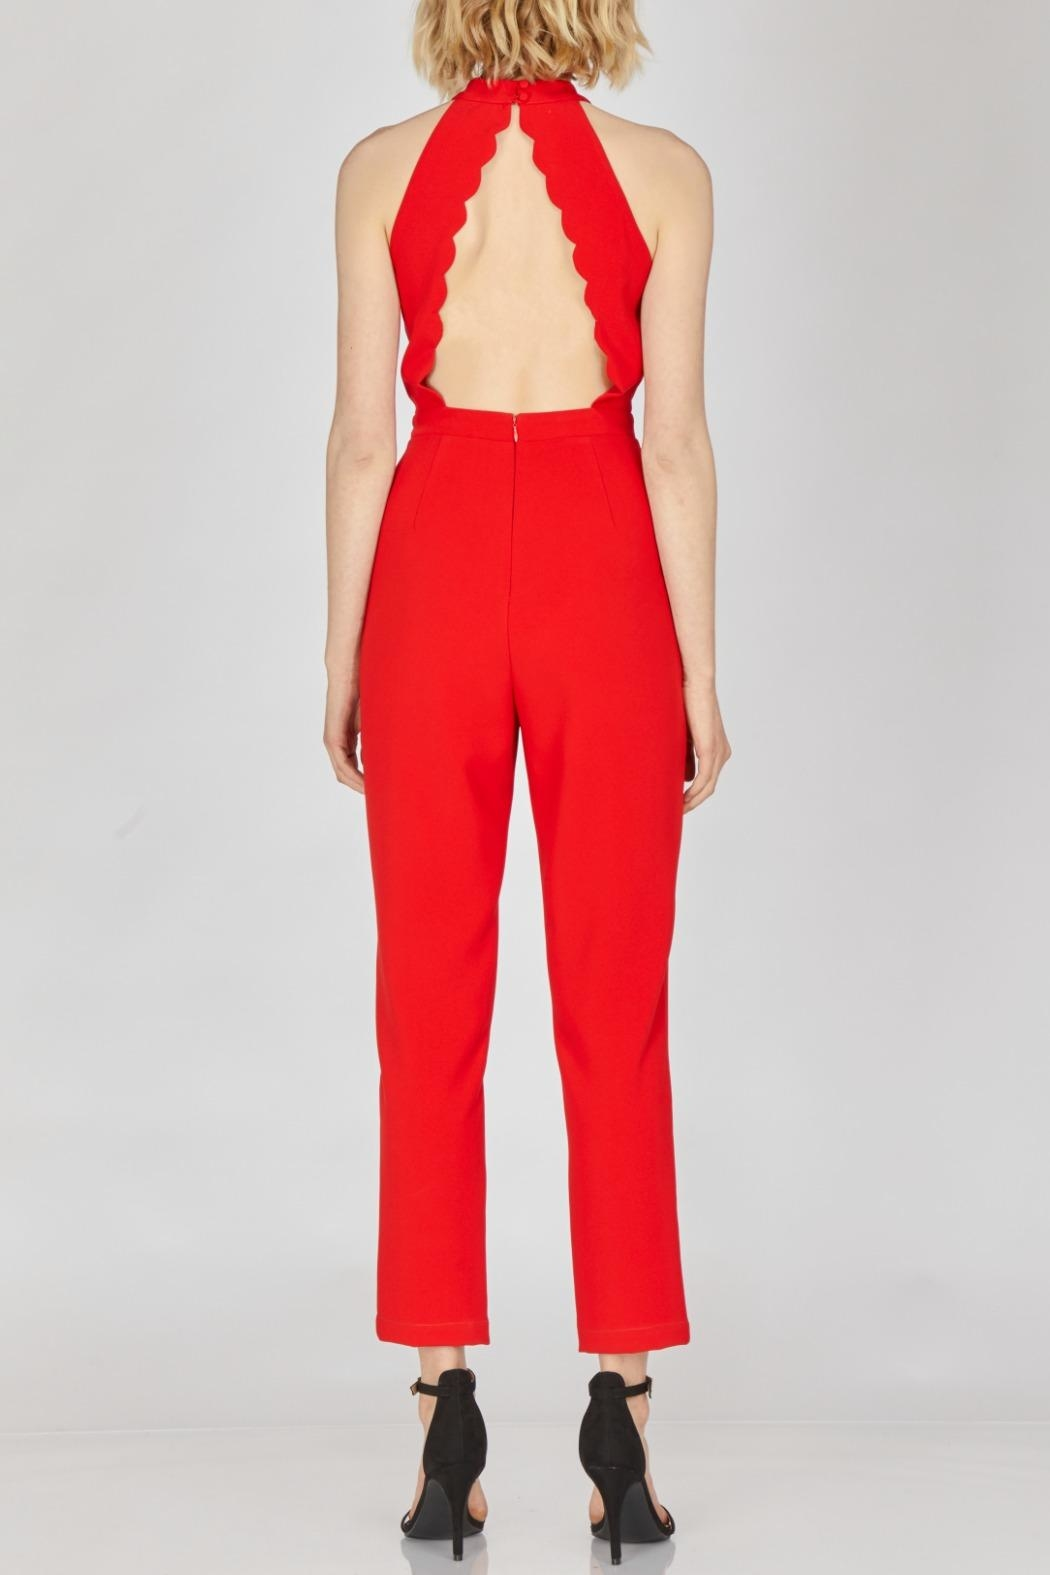 Adelyn Rae Shaylie Scallop Jumpsuit - Front Full Image